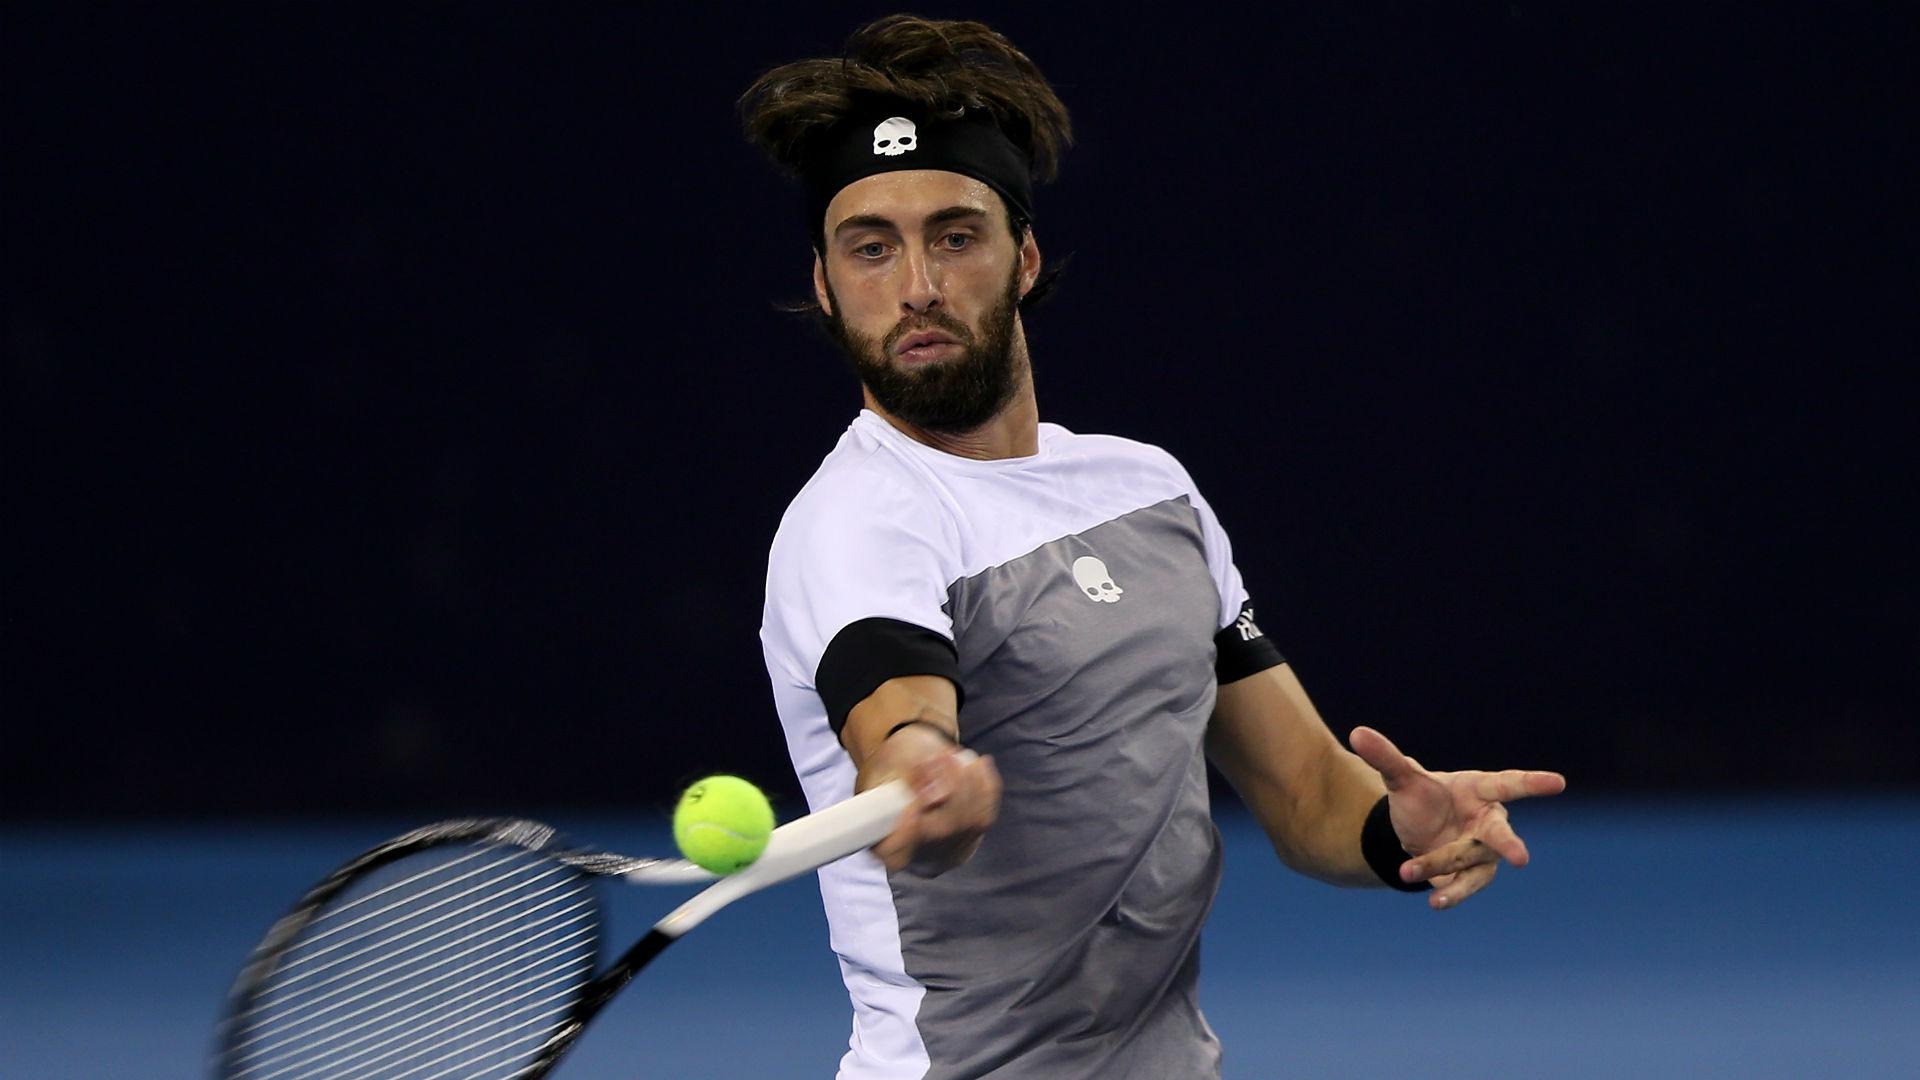 Juan Martin del Potro's opponent in the China Open final will be Nikoloz Basilashvili, who overcame Kyle Edmund 7-6 (8-6) 6-4 on Saturday.